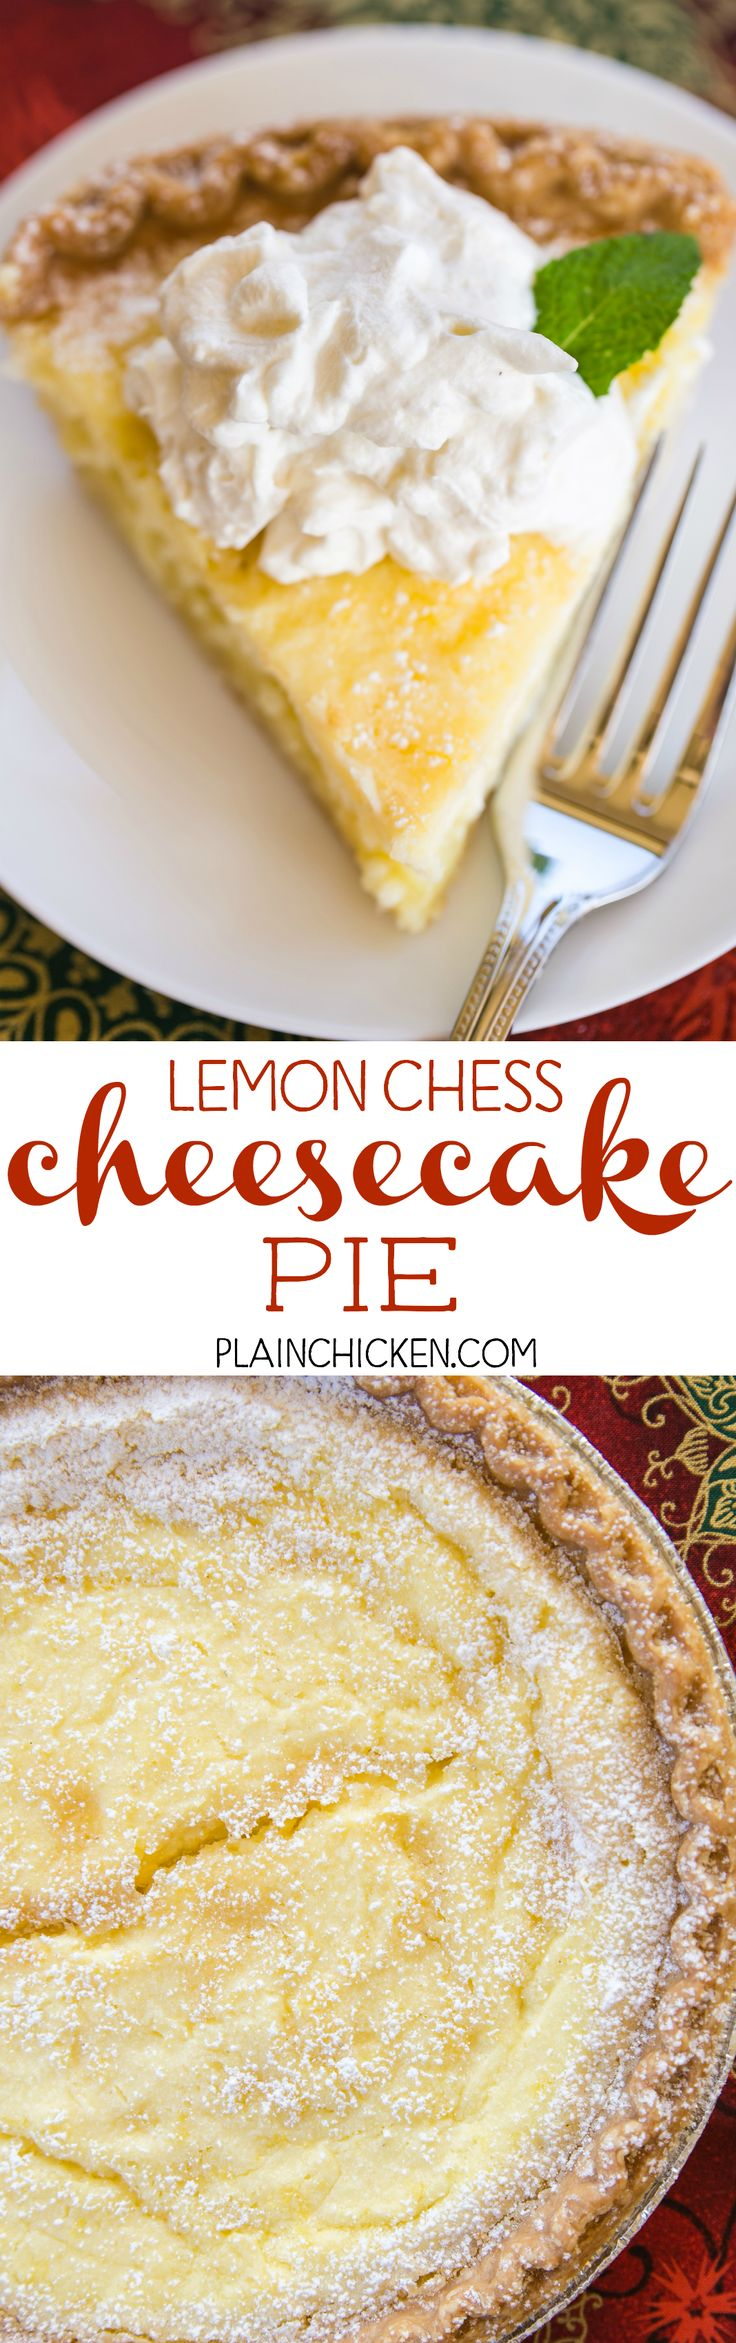 Lemon Chess Cheesecake Pie - two favorites in one dessert! Quick cheesecake layer on the bottom and a delicious homemade lemon chess pie on top! Pie crust, cream cheese, sugar, eggs, butter, milk, lemon juice, lemon rind, flour, cornmeal. Can make ahead of time and refrigerate until ready to serve. Top with fresh homemade whipped cream. SO good! A MUST for your holiday meal!!